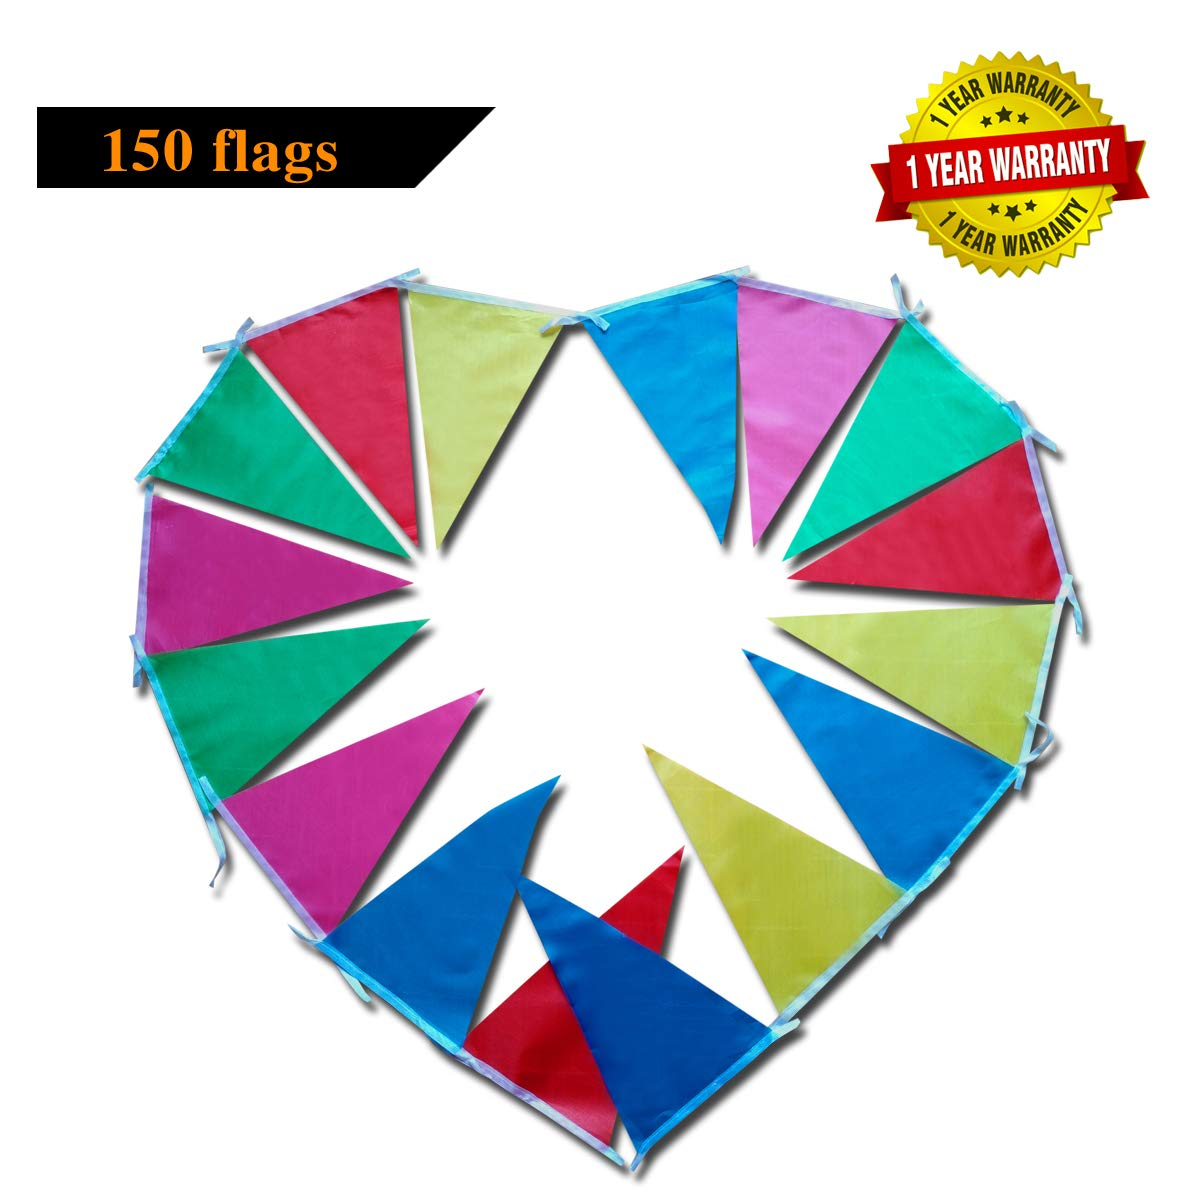 Rainbow Garden Outdoor Bunting Flag Banner Multicolour Double Sided 150 Flags Bunting for Birthday Circus Festival Summer Seaside Party MILsEnse Bunting for Party Decoration